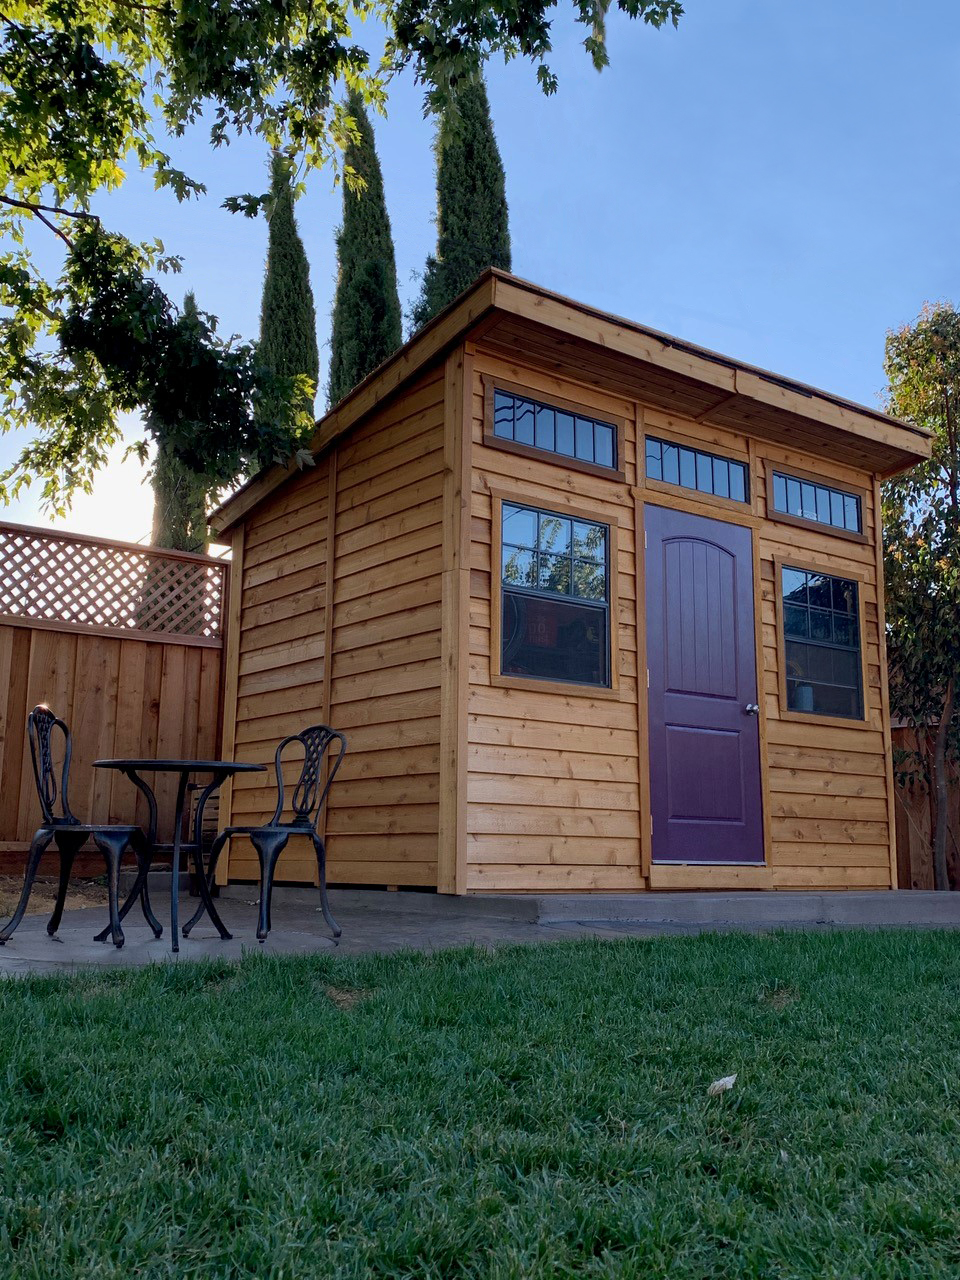 She Shed | Sunshed Garden 12'x12' - Outdoor Living Today on Outdoor Living Today Sunshed id=13132